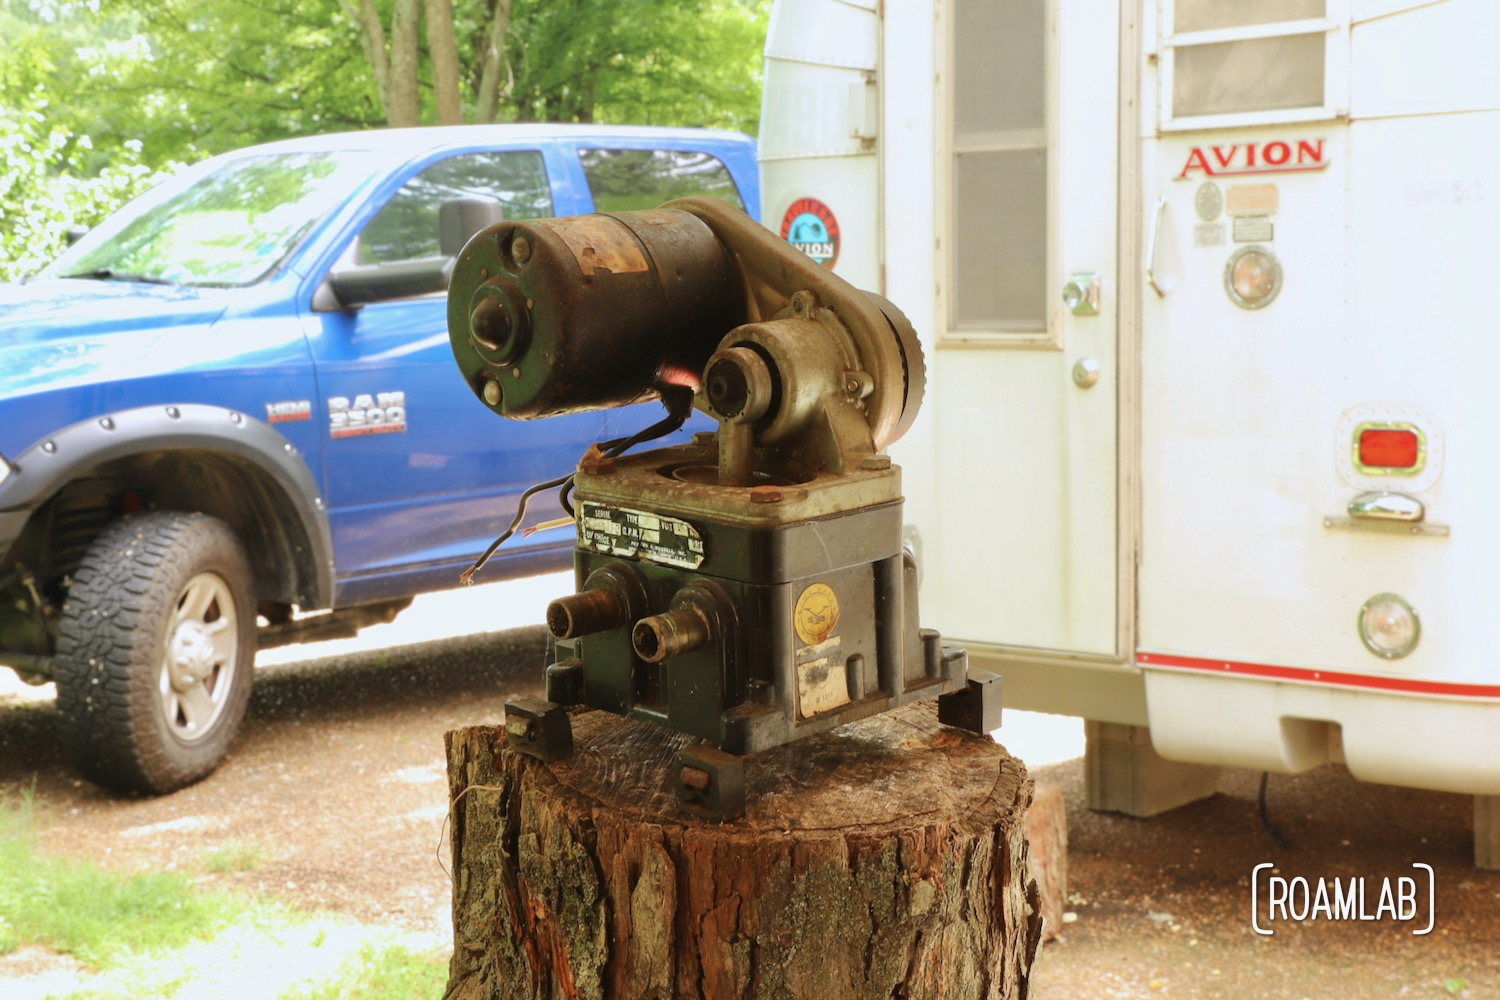 Our vintage 1970 Avion truck camper has its original Peters & Russell water pump. While we will be upgrading the water system, we test the pump for fun.